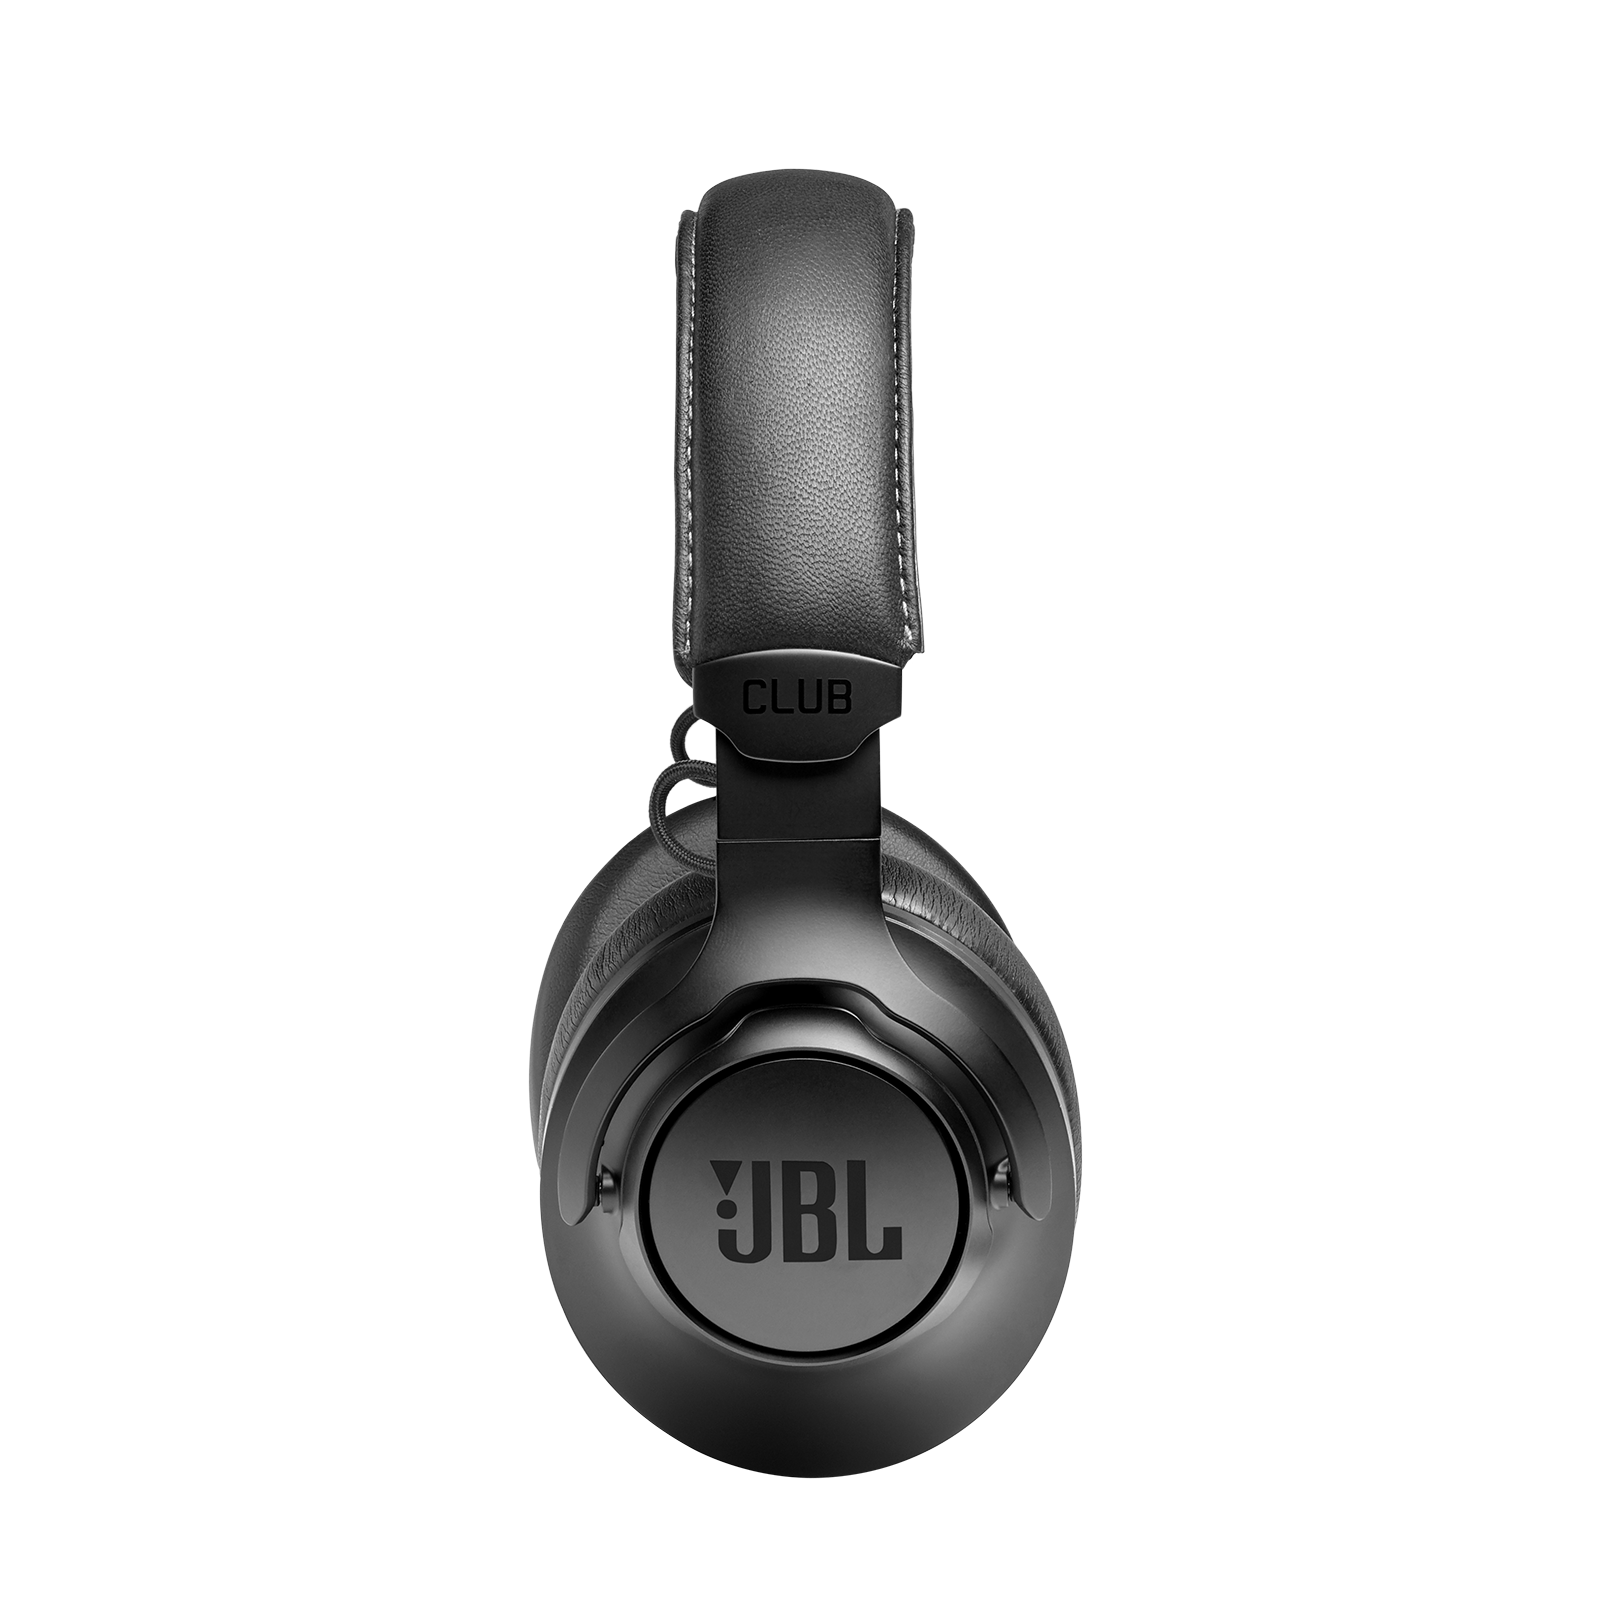 JBL CLUB ONE - Black - Wireless, over-ear, True Adaptive Noise Cancelling headphones inspired by pro musicians - Detailshot 4